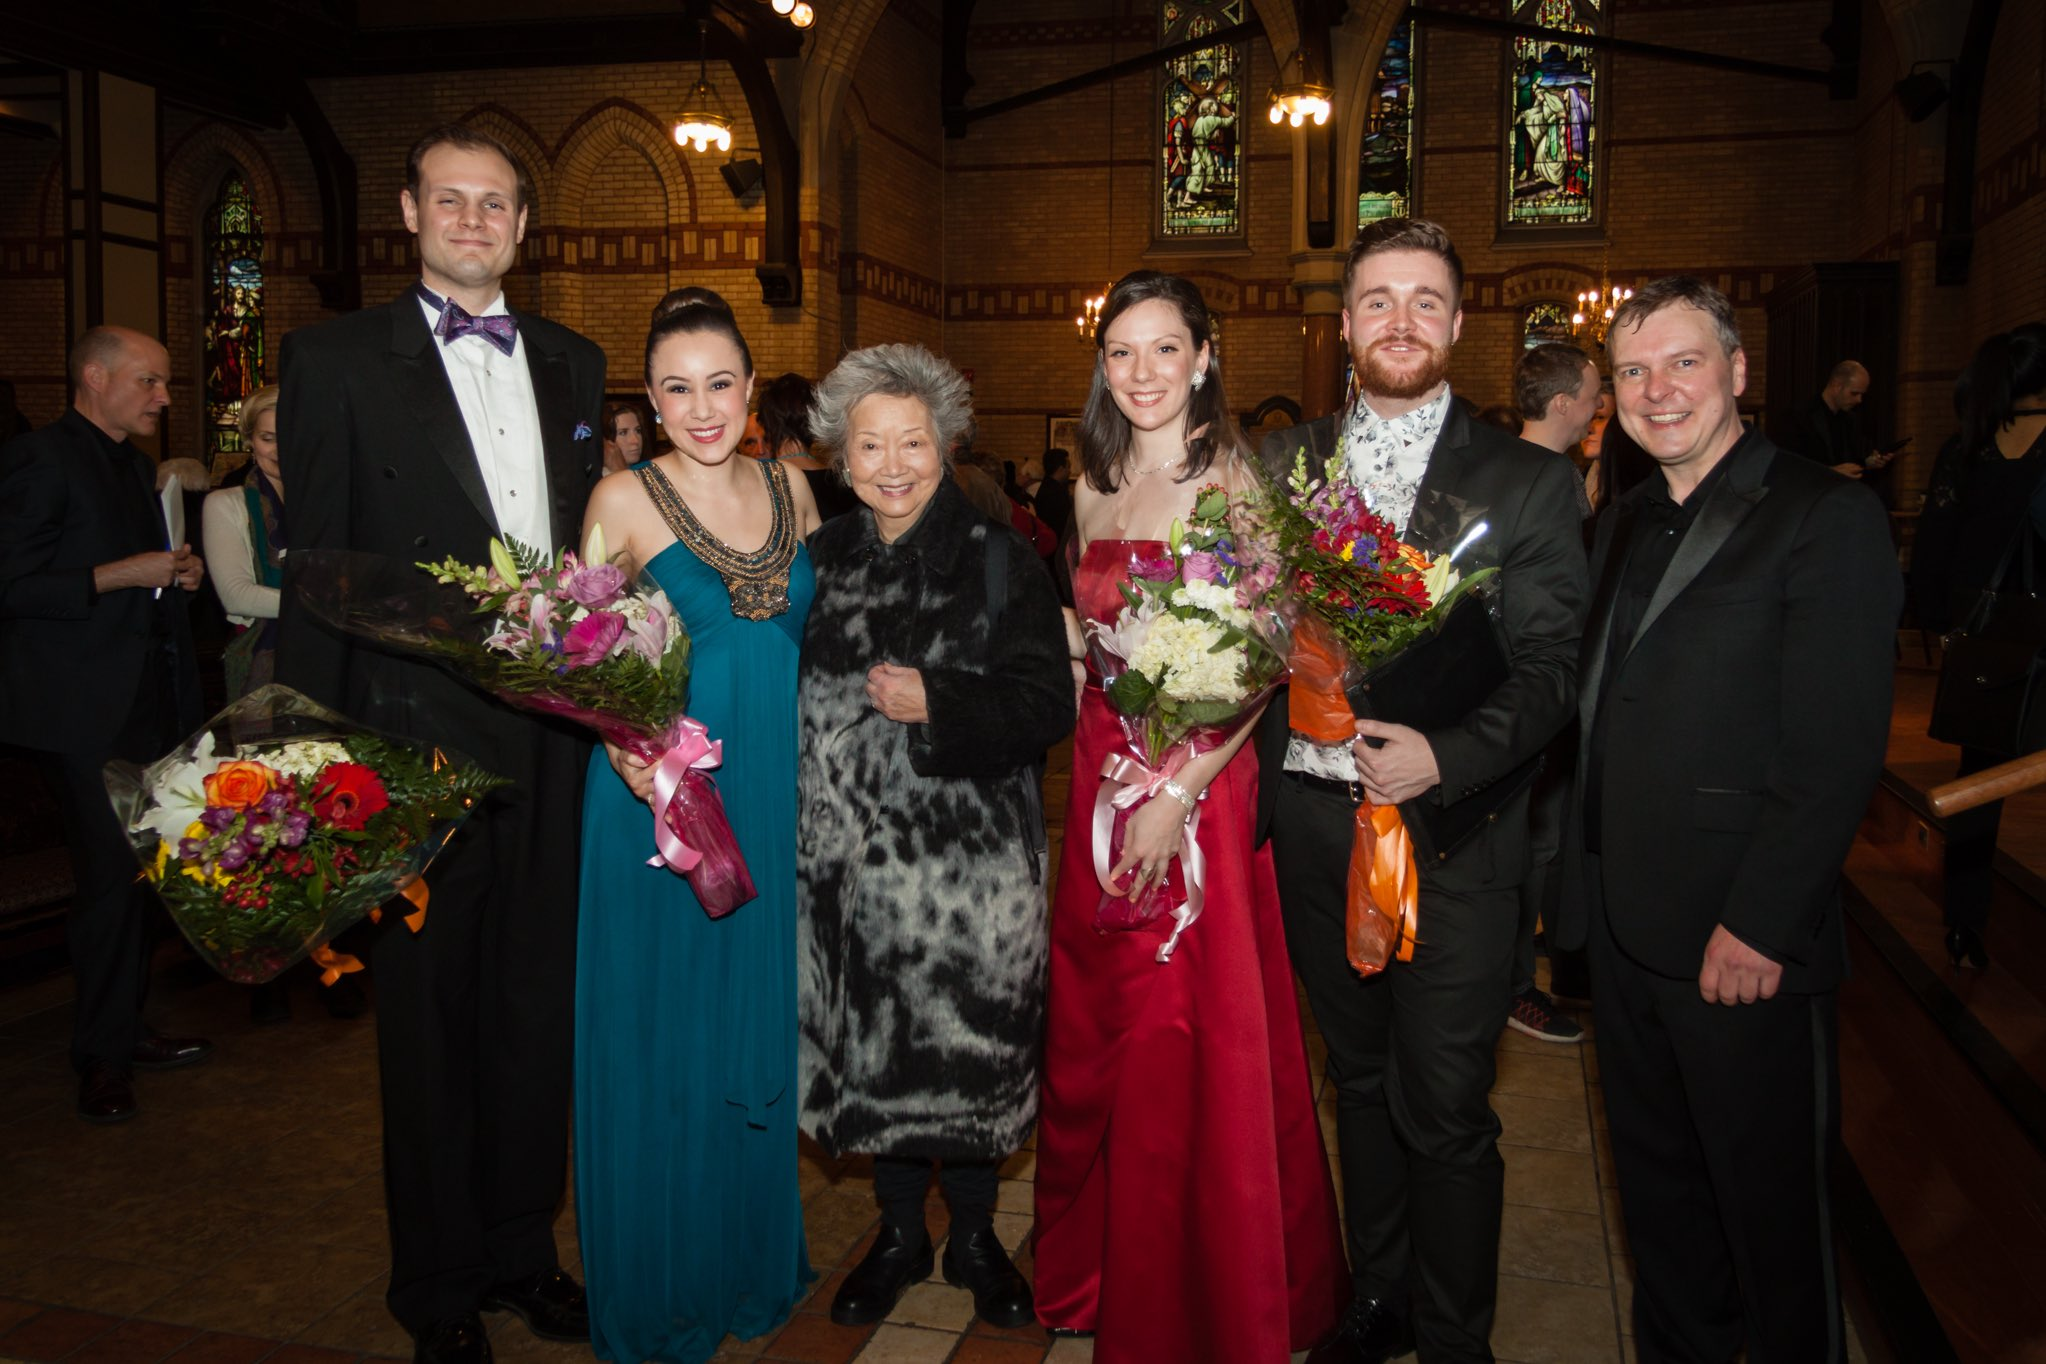 Soloist, Mozart's Requiem with Dr. David Bowser, Andrea Nunez, Daevyd Pepper, Dylan Wright and the Right Honourable Adrienne Clarkson | Mozart Project | Andrew Kcont photography 2017